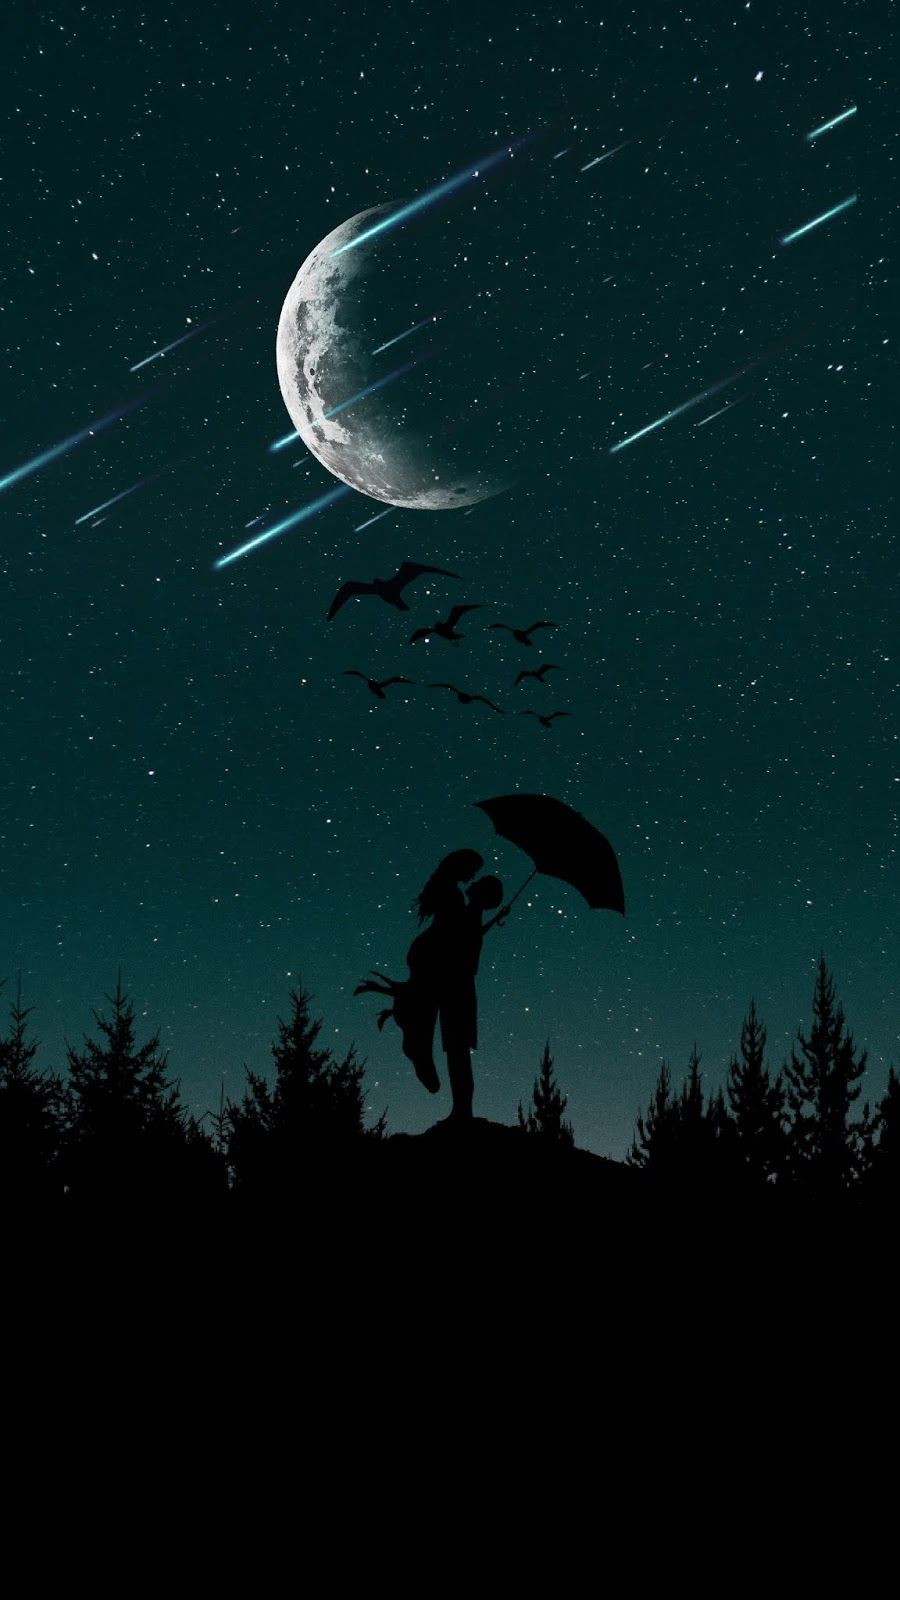 Couple Silhouettes Starry Sky Night Sky Wallpaper Silhouette Painting Love Wallpaper